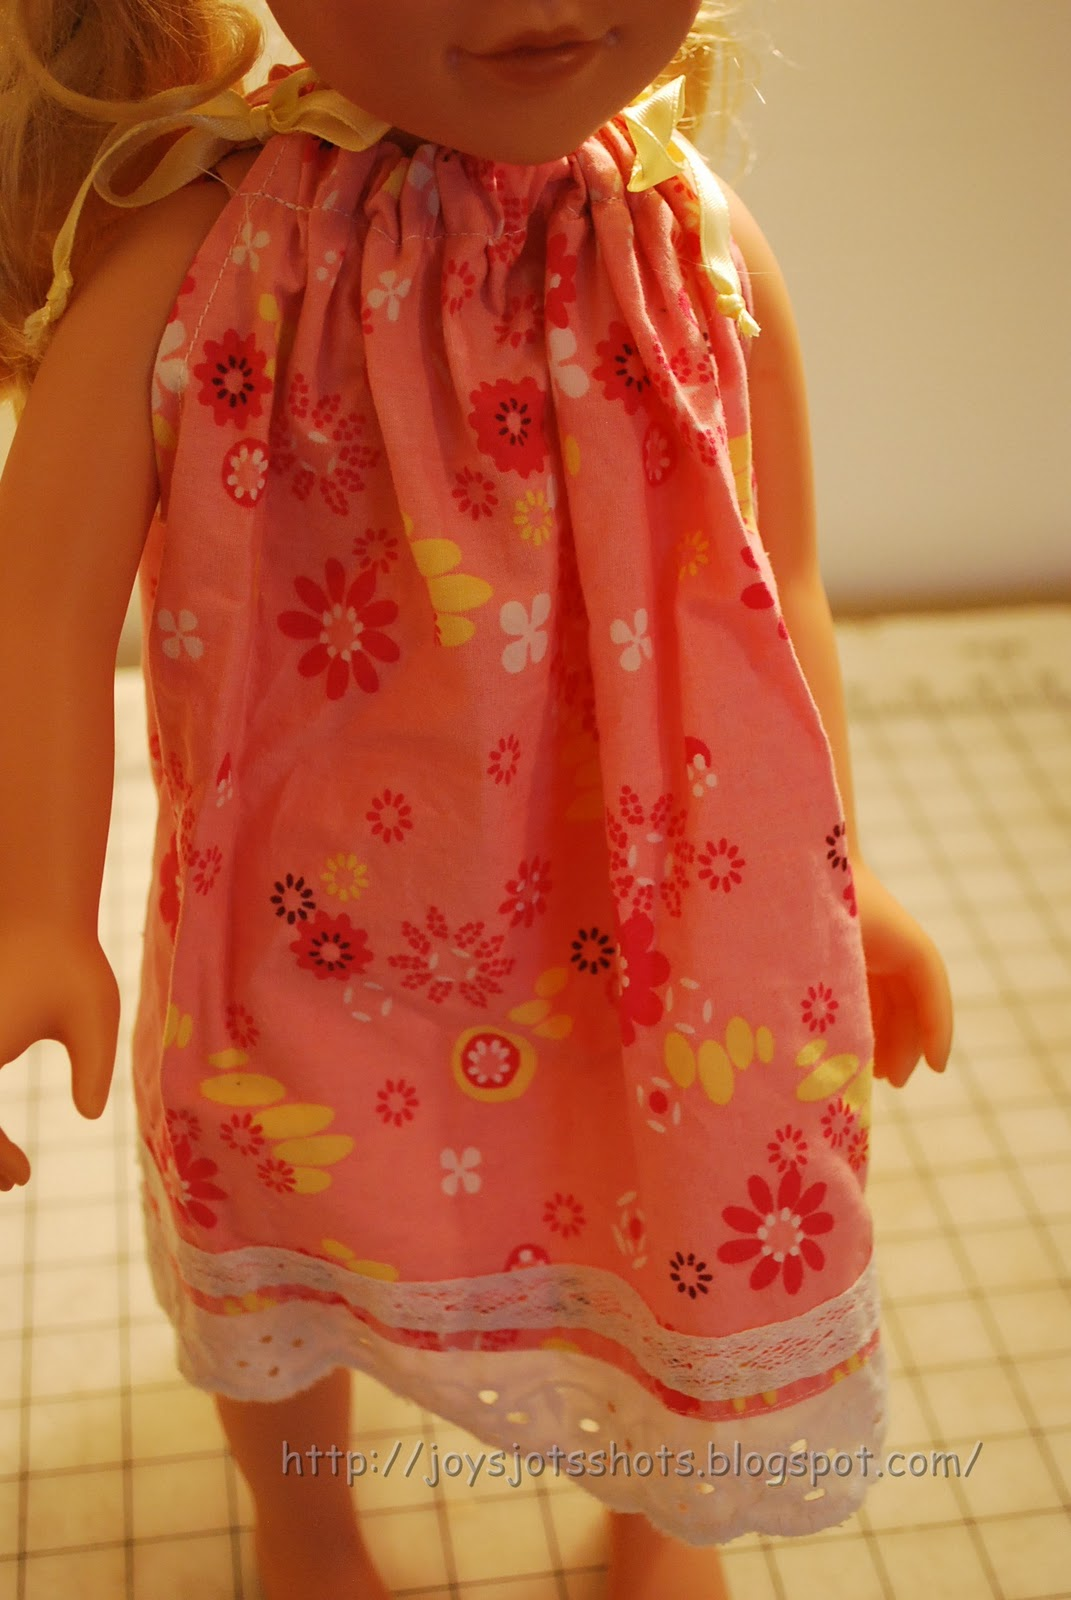 http://joysjotsshots.blogspot.com/2012/01/doll-pillow-case-dress-from-skirt.html